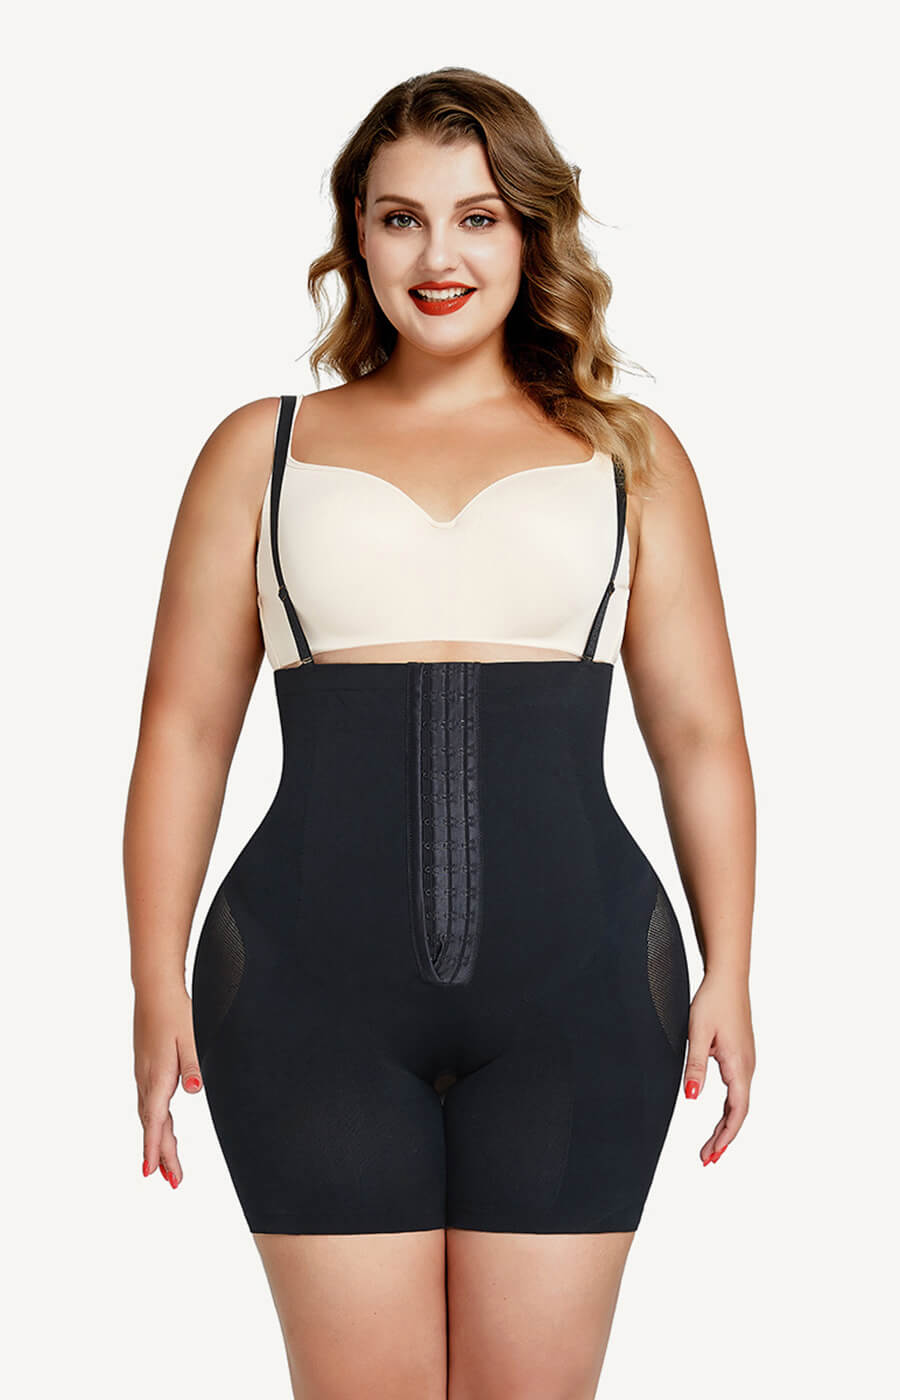 best shapewear for tummy contorl for plus size